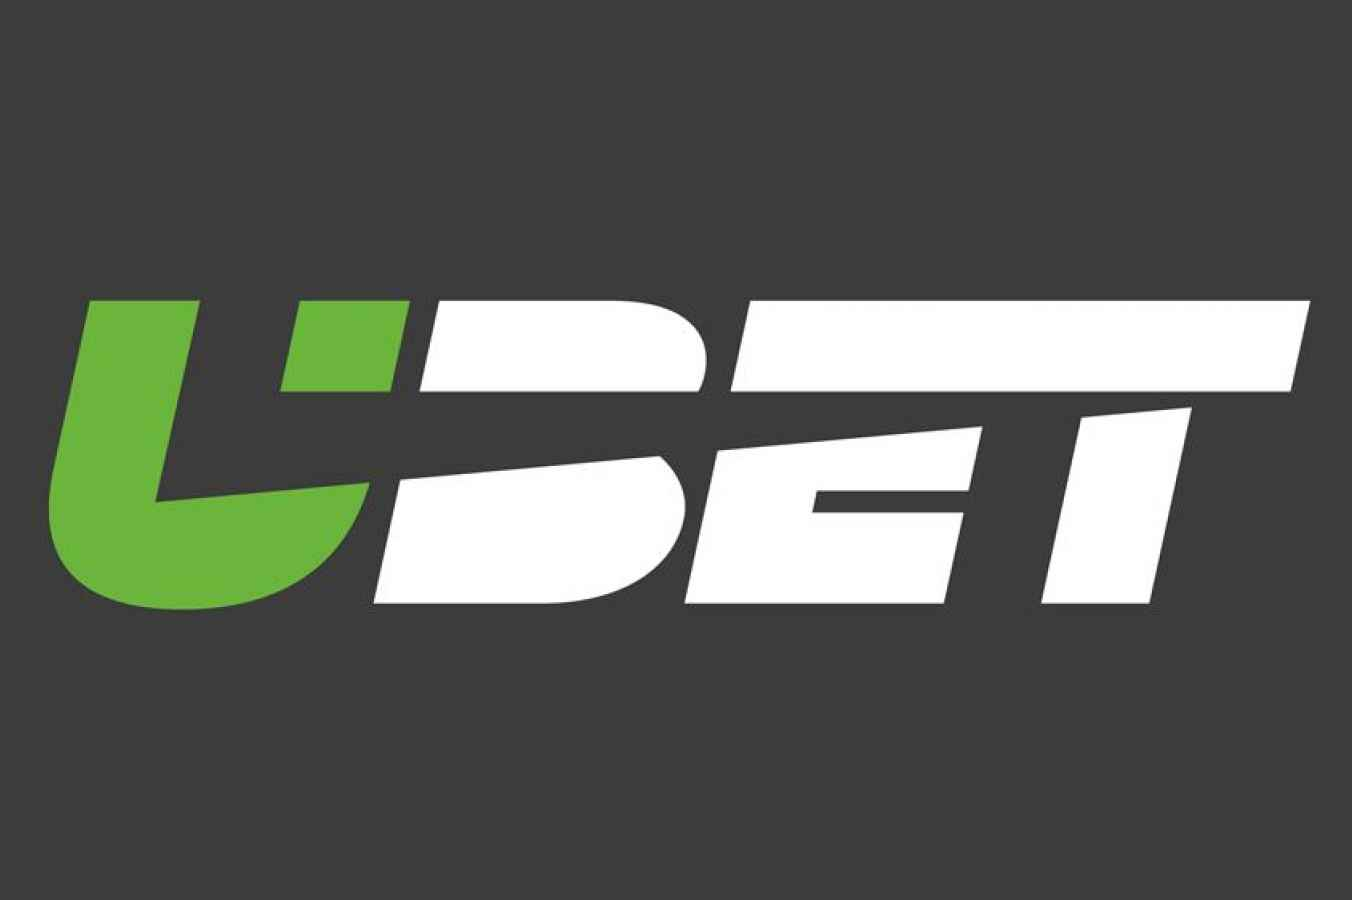 UBET-has-vowed-to-revolutionise-the-betting-experience-1430373394_1352x900